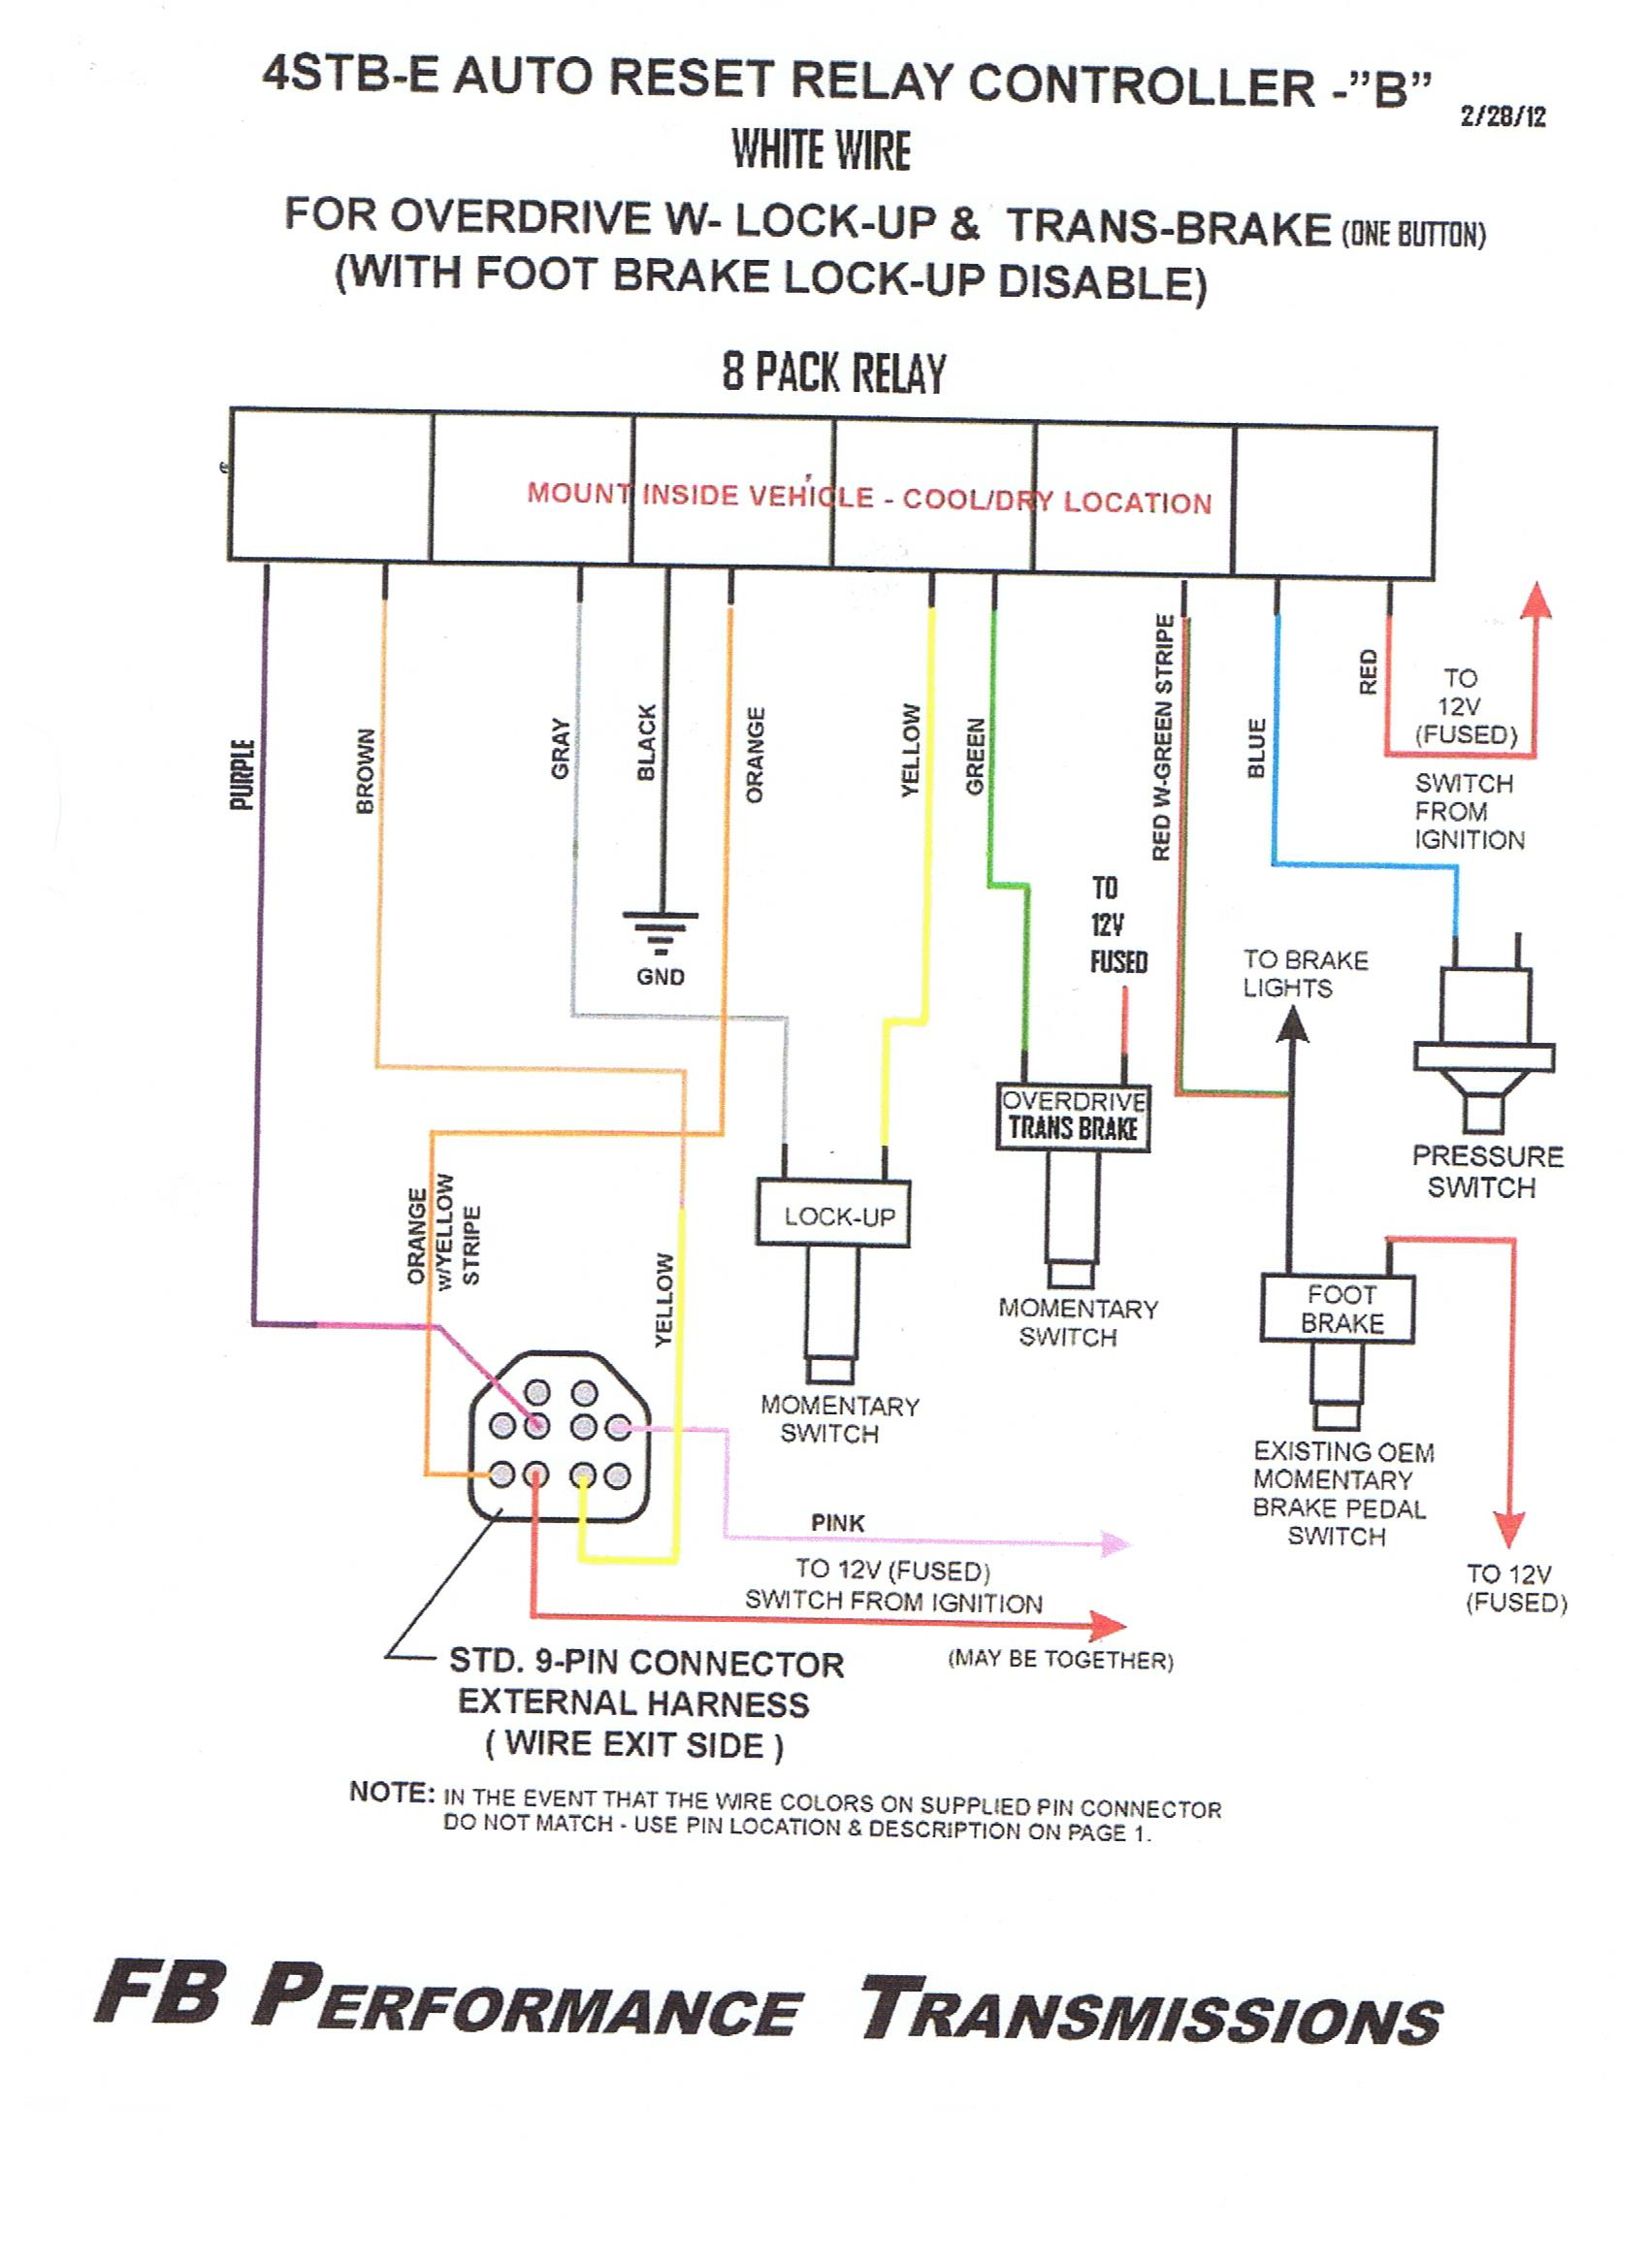 4t65e Wiring Diagram Will Be A Thing 2003 Impala Headlight 4l80e Hydraulic Schematic Get Free Image About Transmission